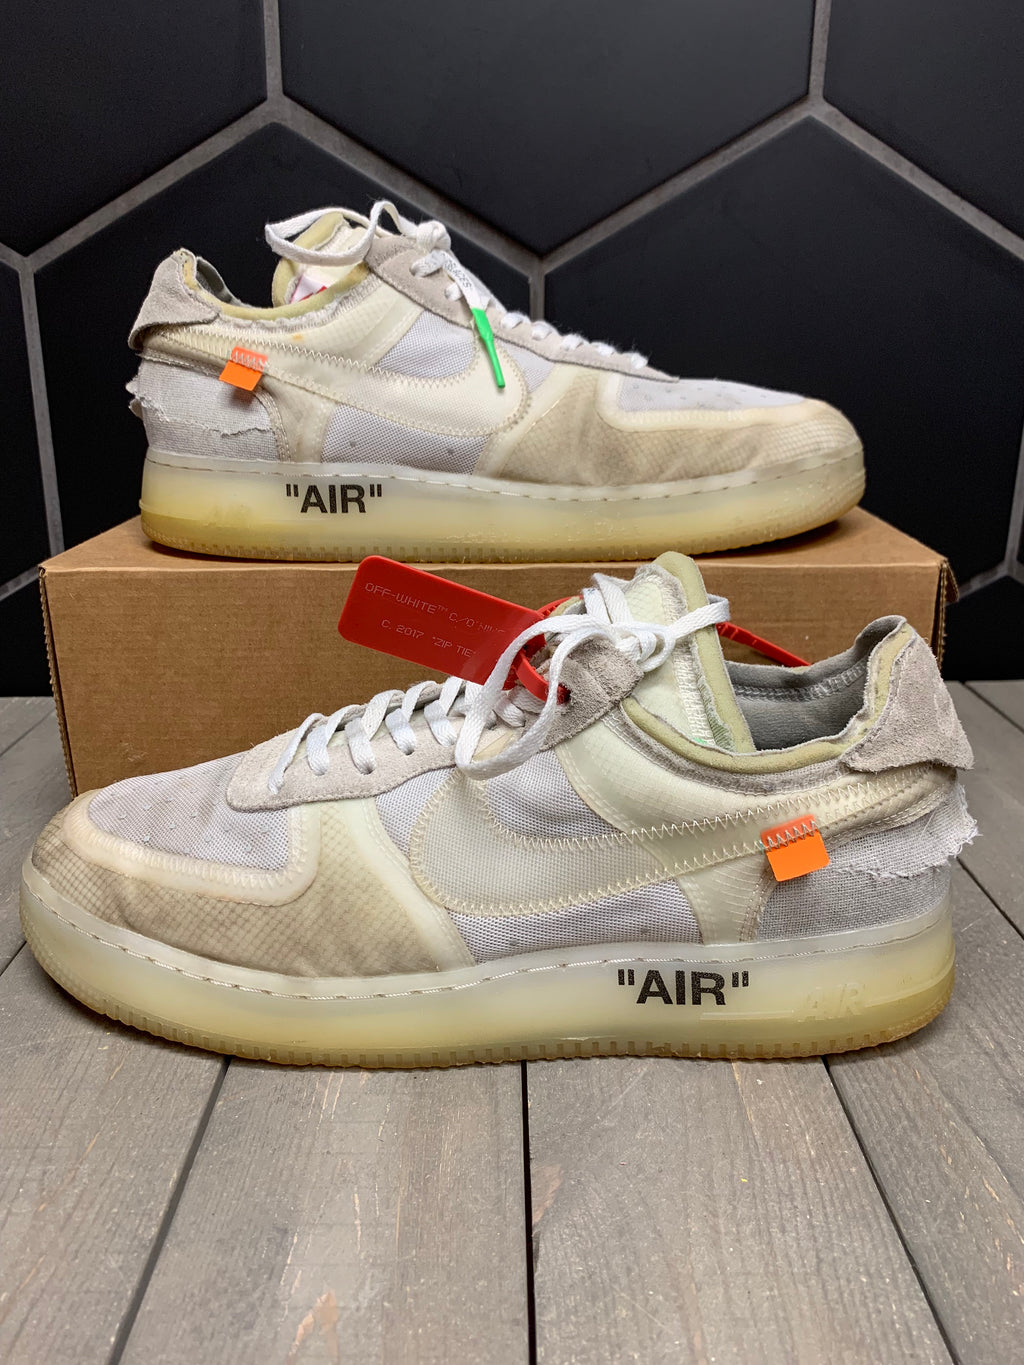 Used W/O Box! Nike x Off White Air Force 1 Low Shoe Size 12